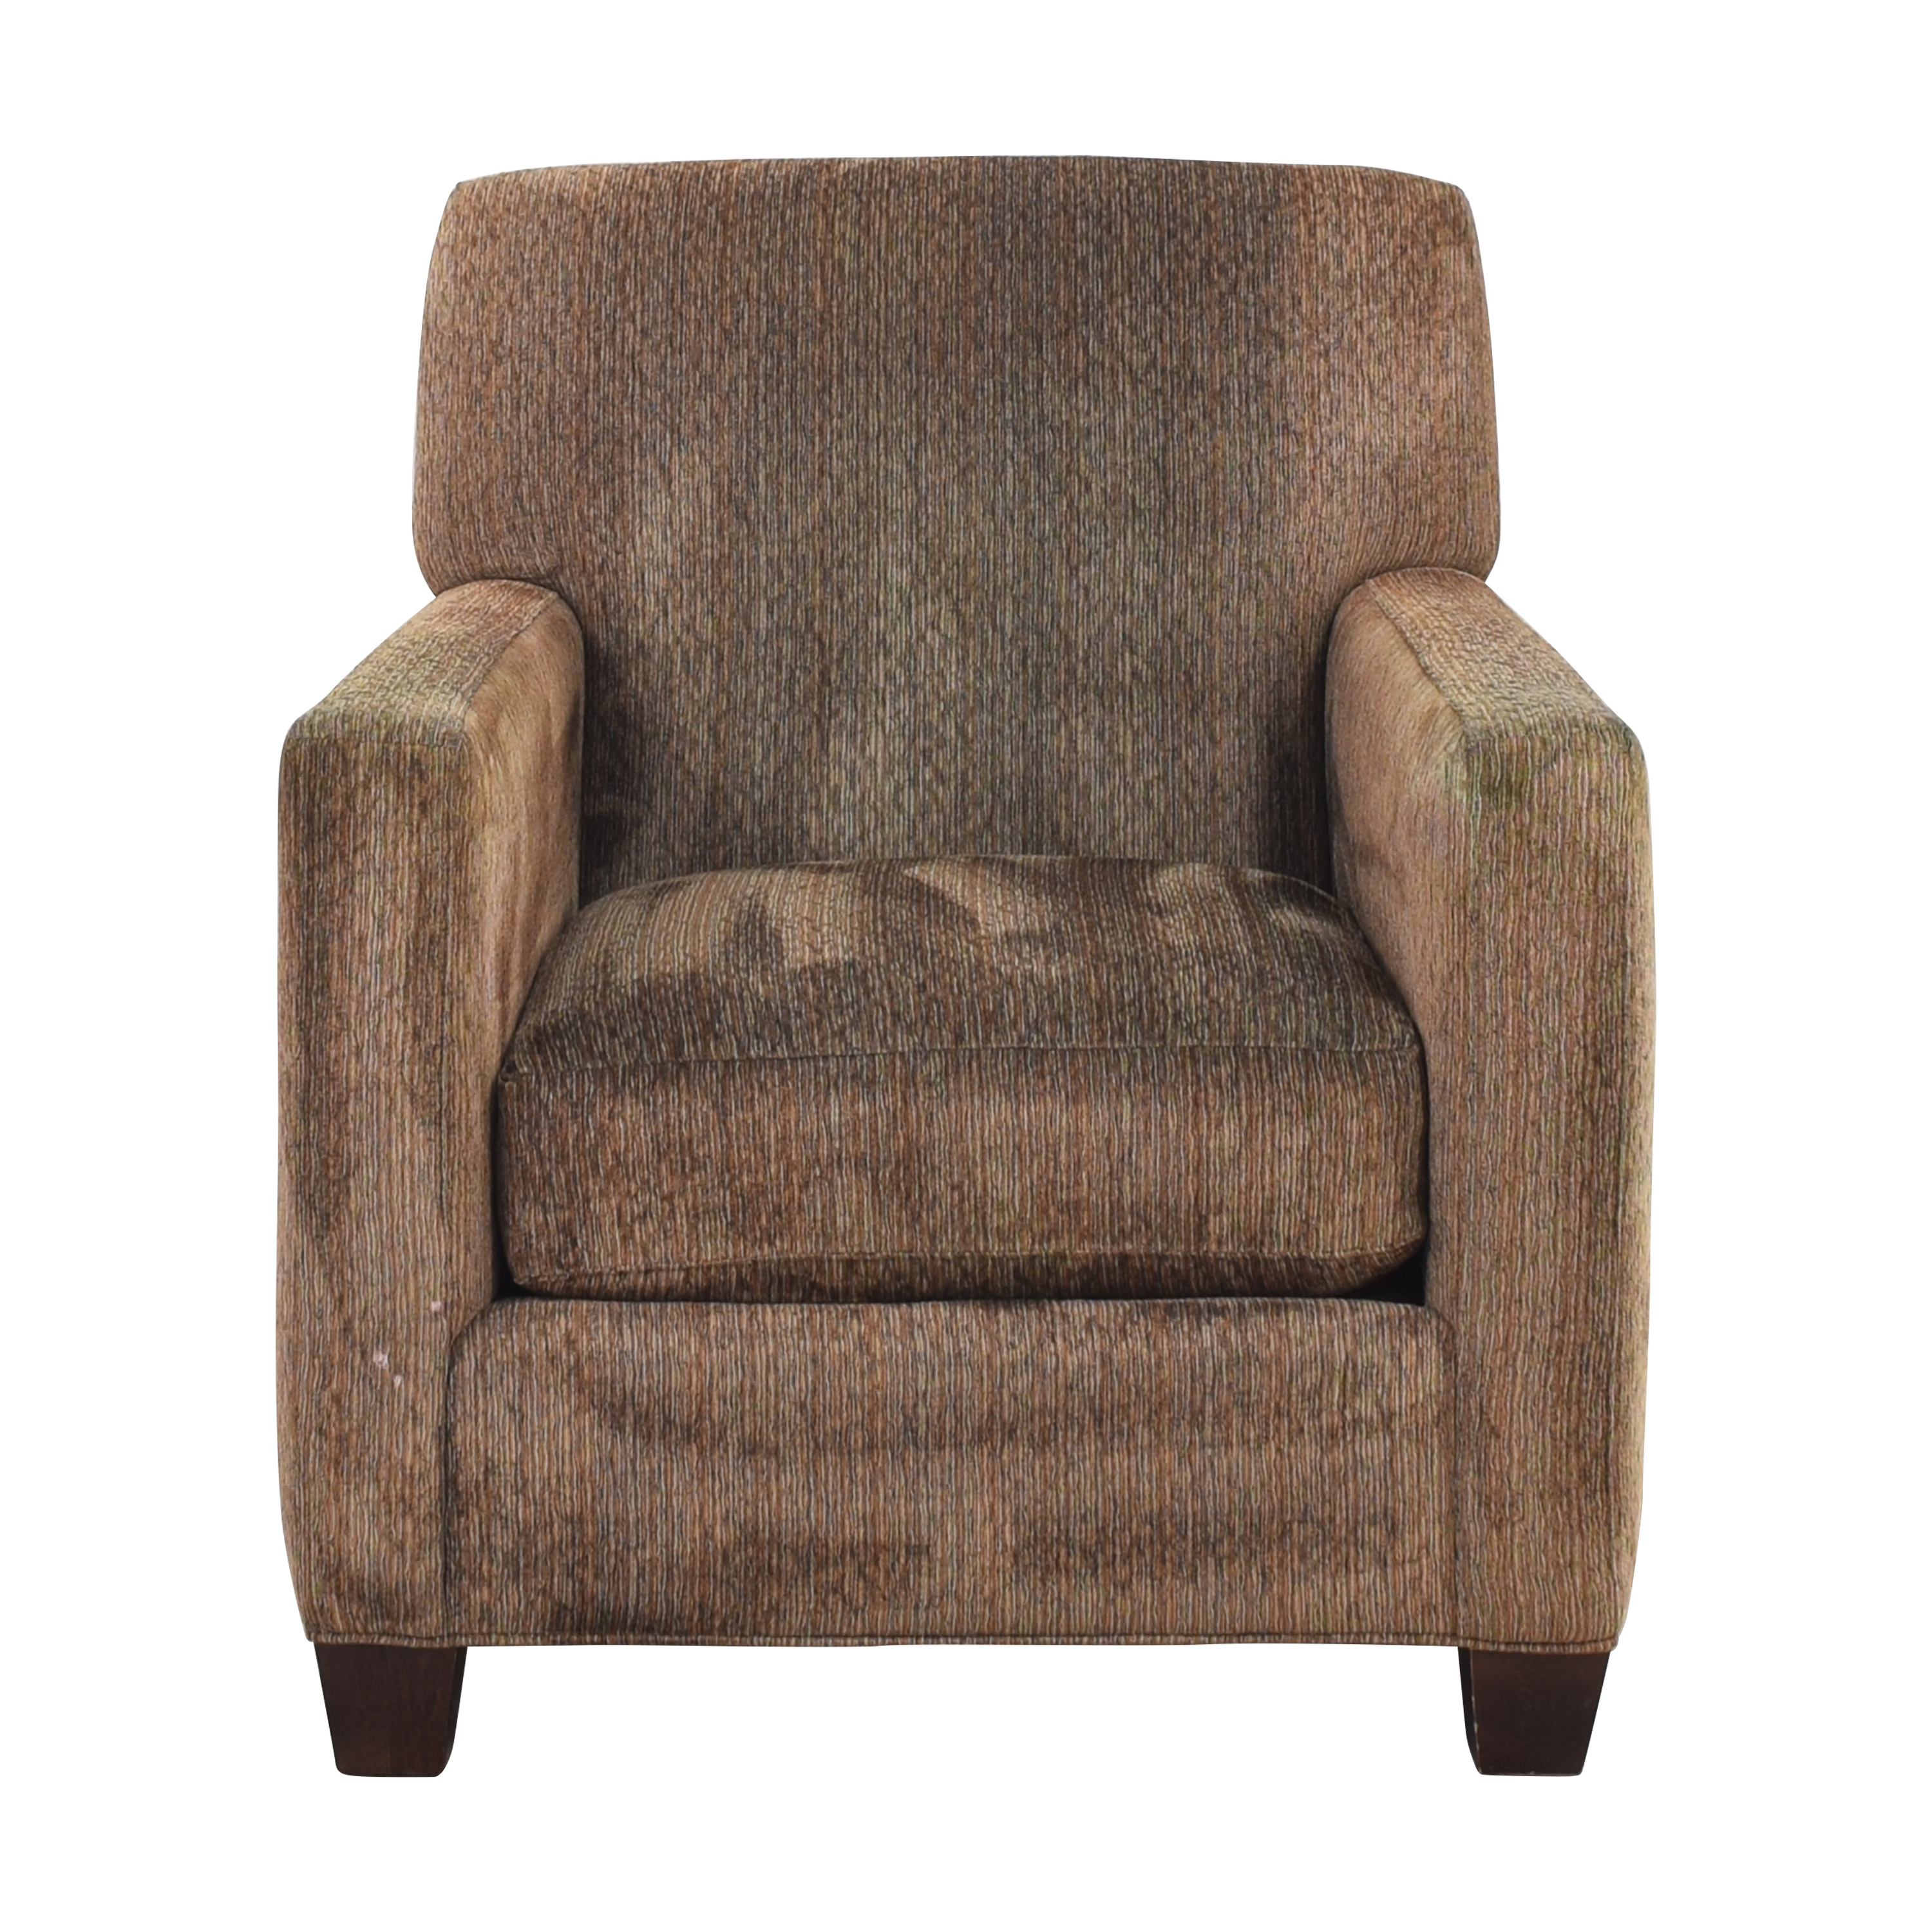 Crate & Barrel Crate & Barrel Accent Chair nj